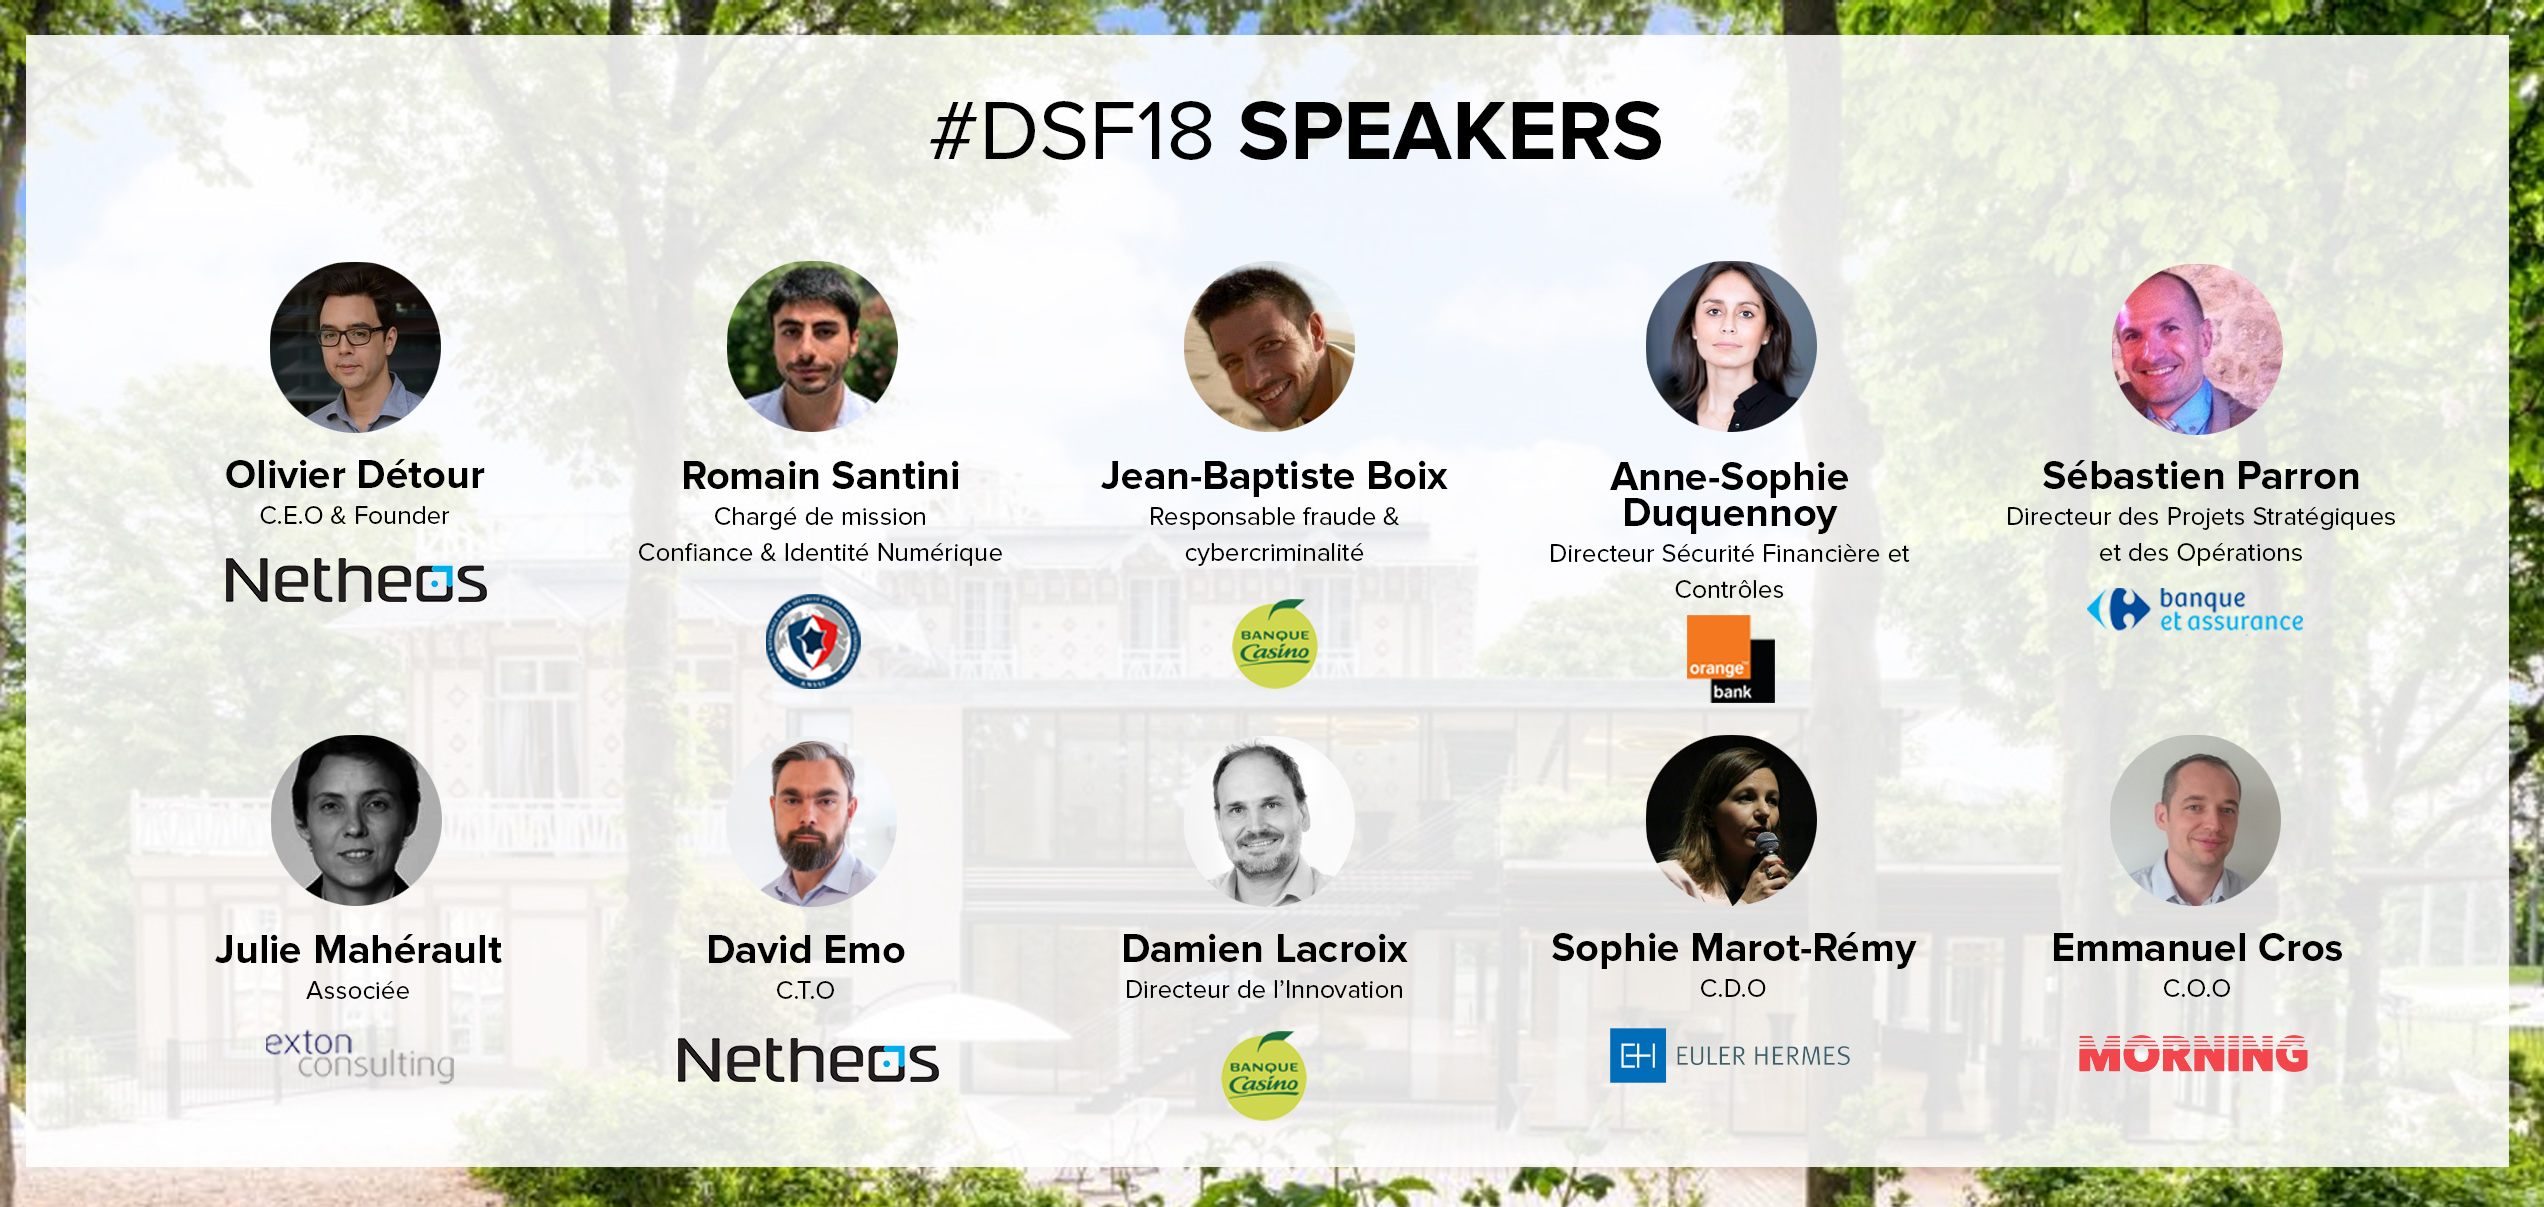 digital subscription forum dsf18 speakers banque assurance